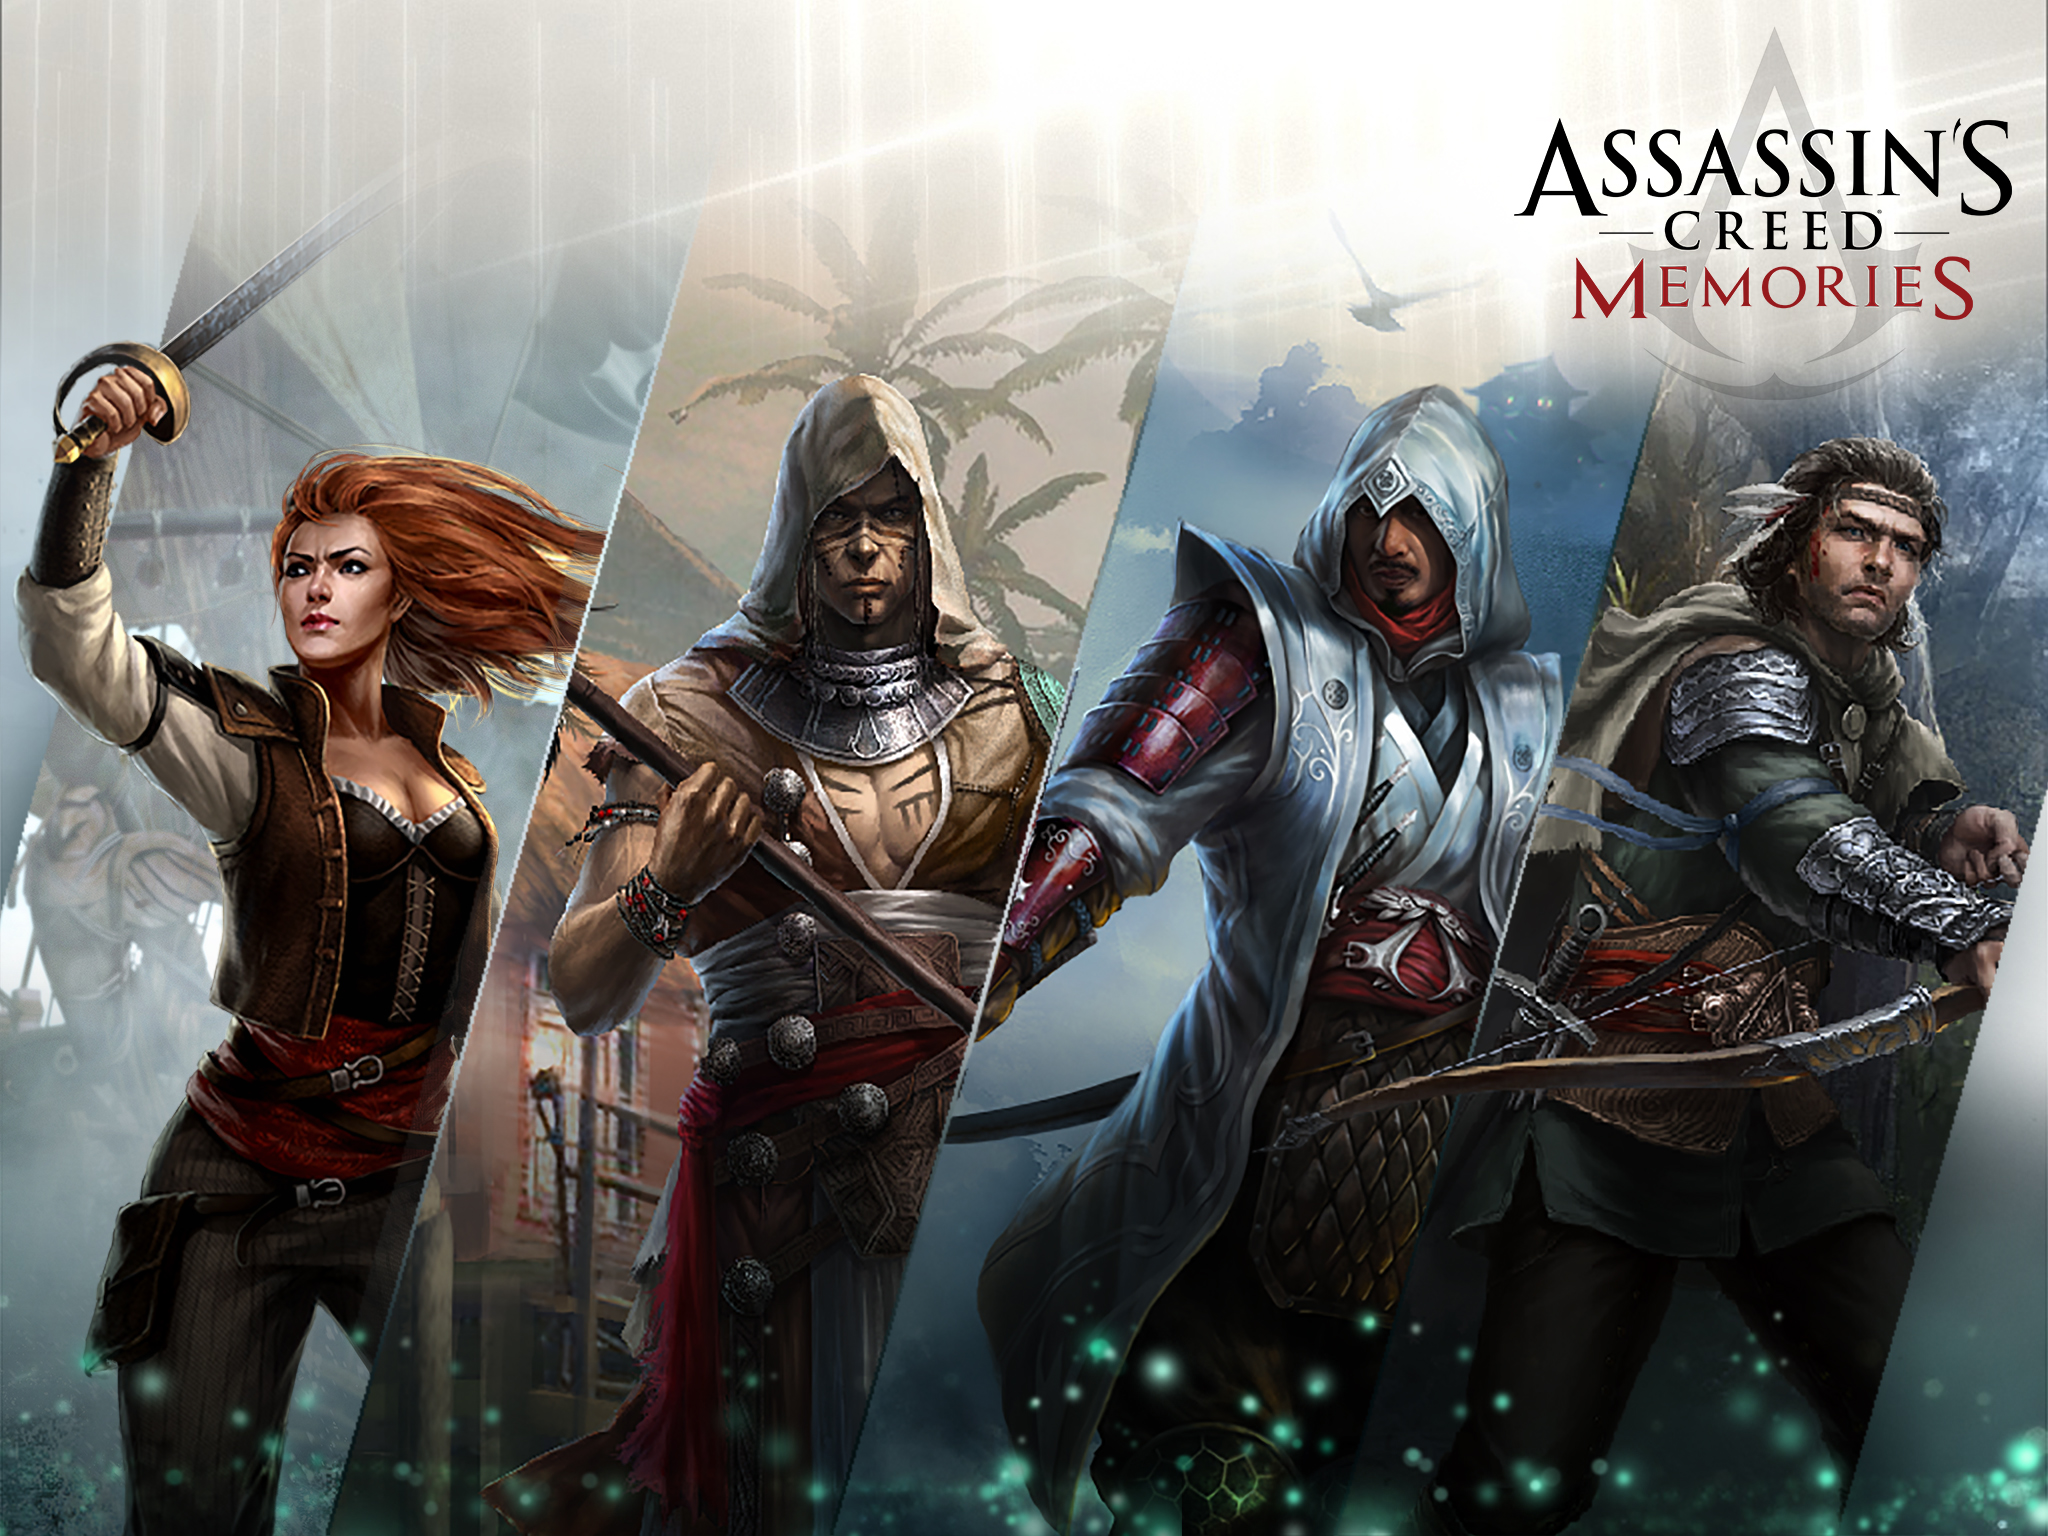 Assassin's Creed Memories